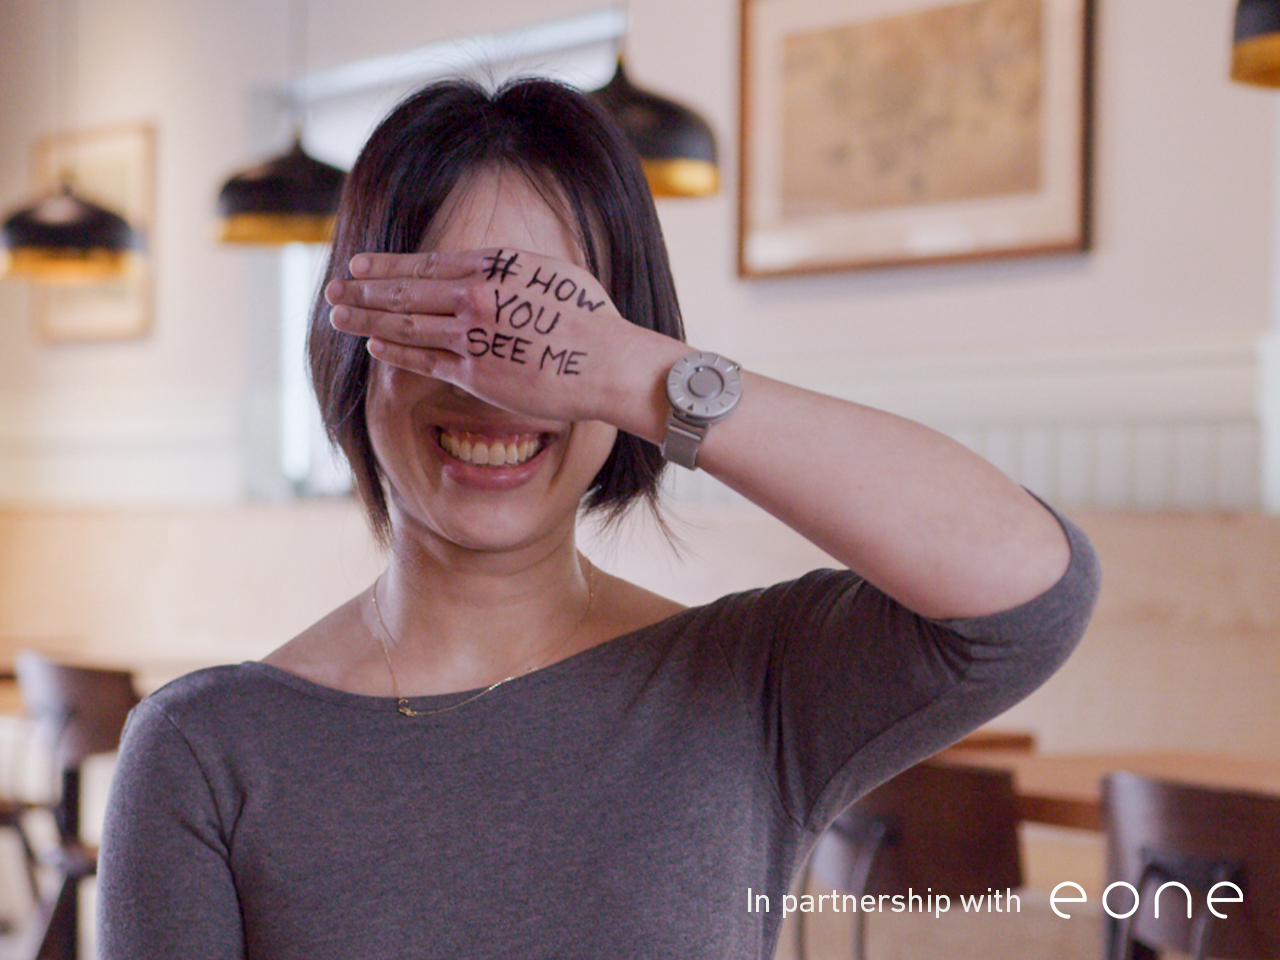 Eone's International Women's Day Campaign Empowers Women to Share their Stories #HowYouSeeMe